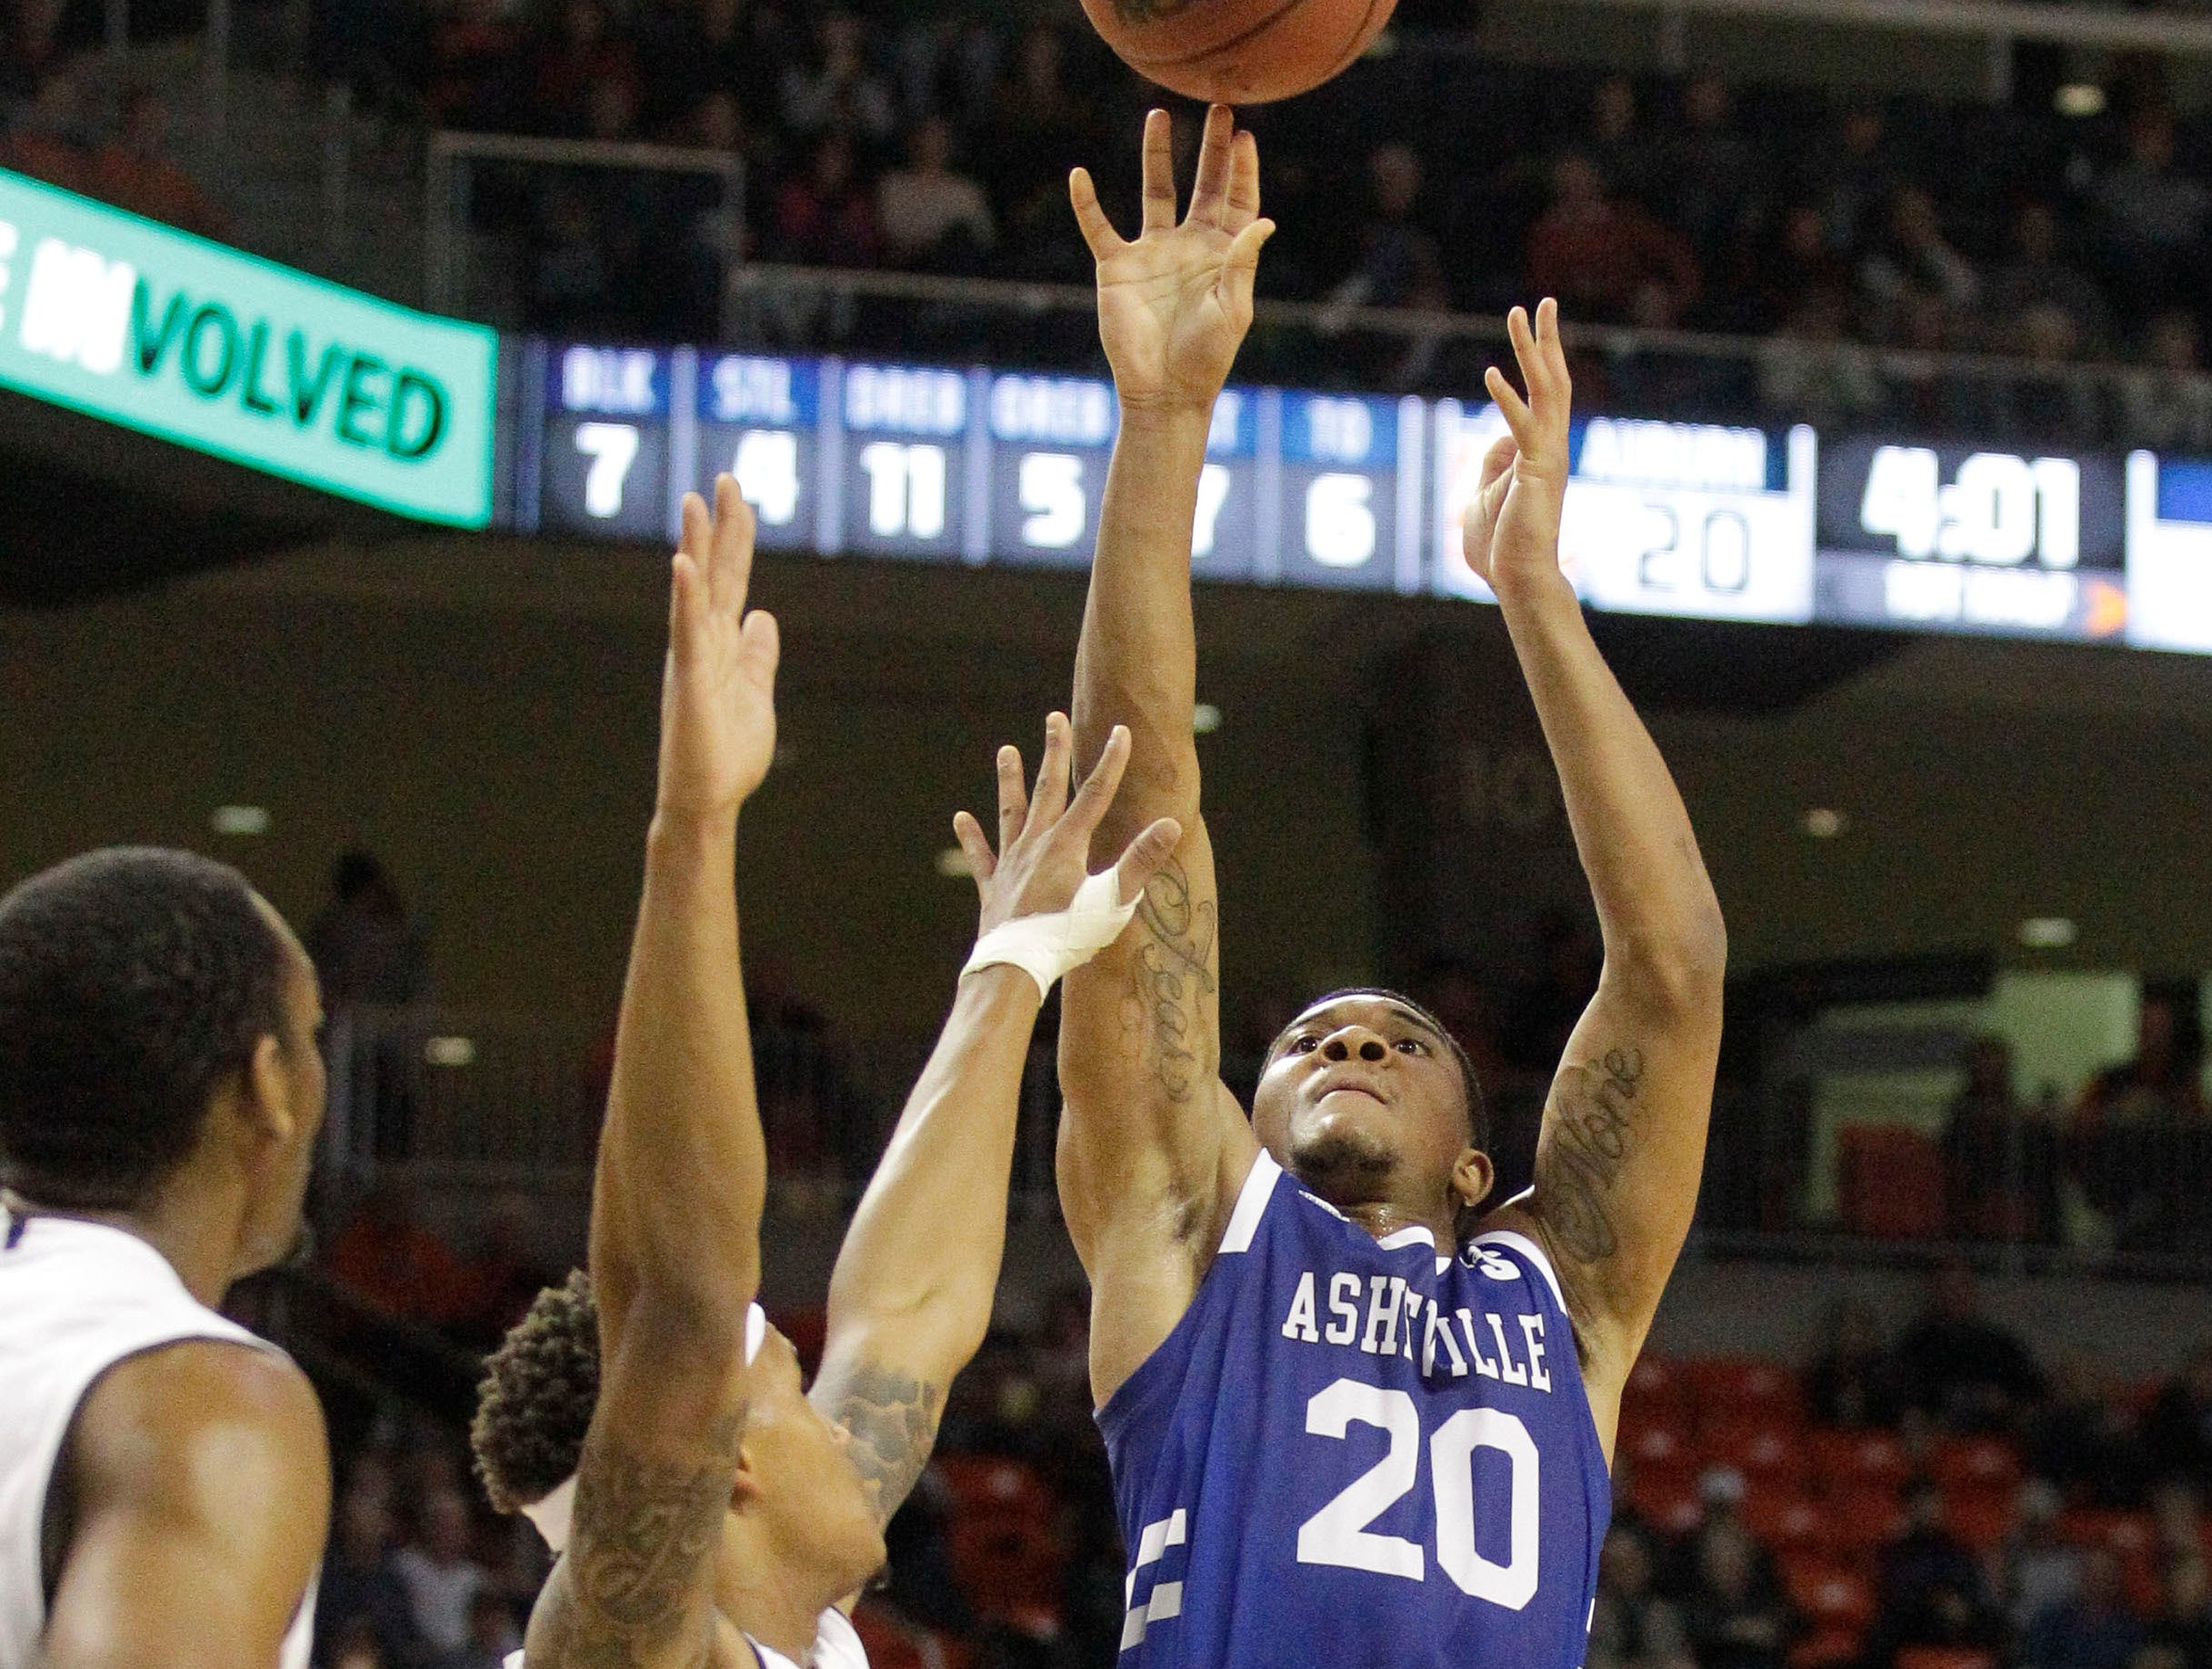 Dec 4, 2018; Auburn, AL, USA; UNC-Asheville Bulldogs guard DeVon Baker (20) shoots over Auburn Tigers guard Bryce Brown (2) during the first half at Auburn Arena. Mandatory Credit: John Reed-USA TODAY Sports